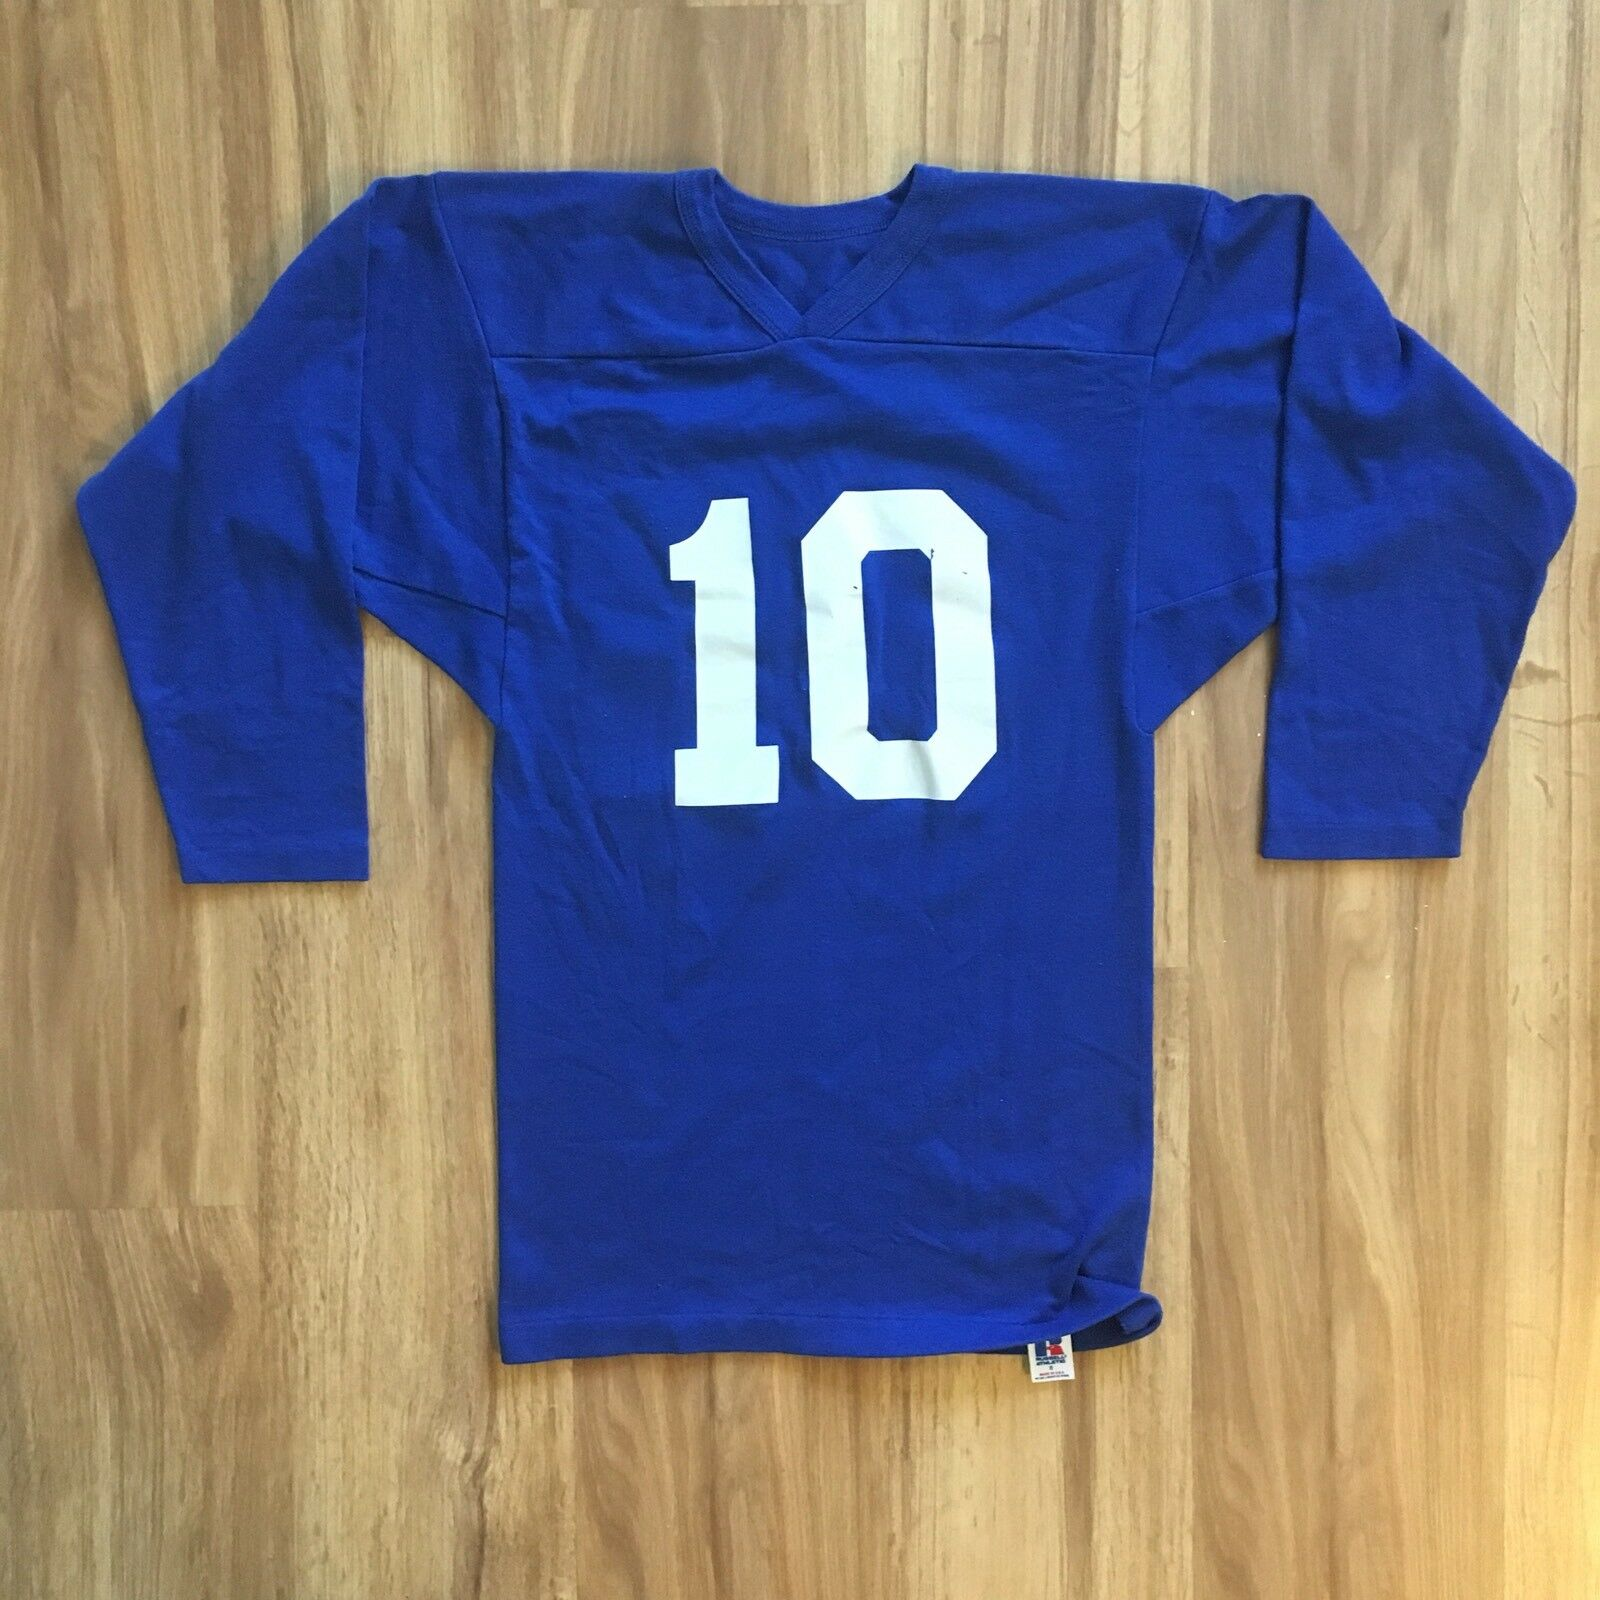 VINTAGE 80s Russell Athletic bluee White Gusseted Blank Football Jersey 10 S